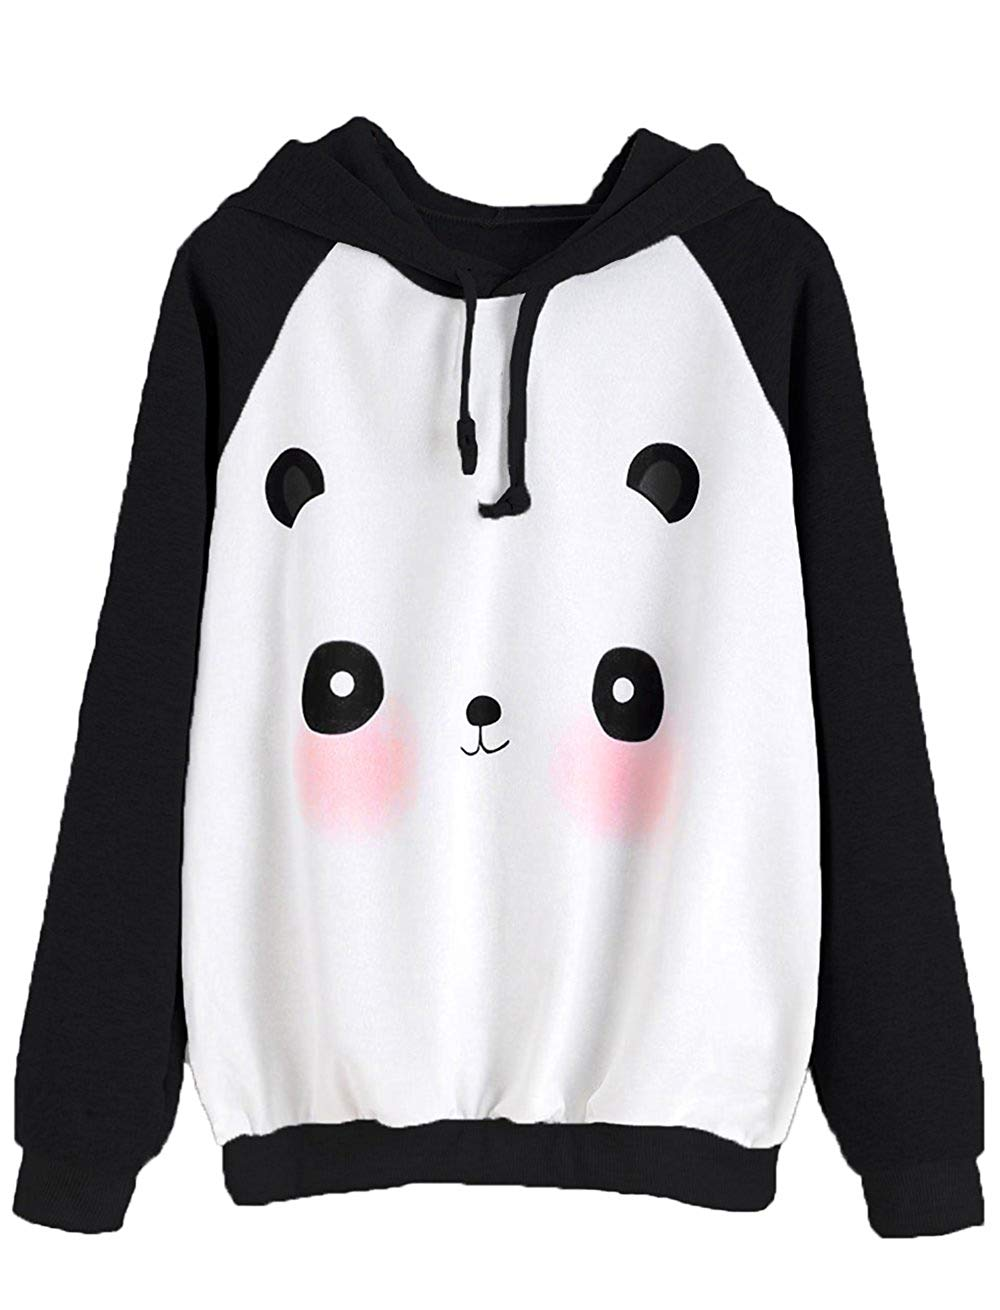 MAKEMECHIC Women's Casual Long Sleeve Cartoon Print Raglan Pullover Hoodie Sweatshirt